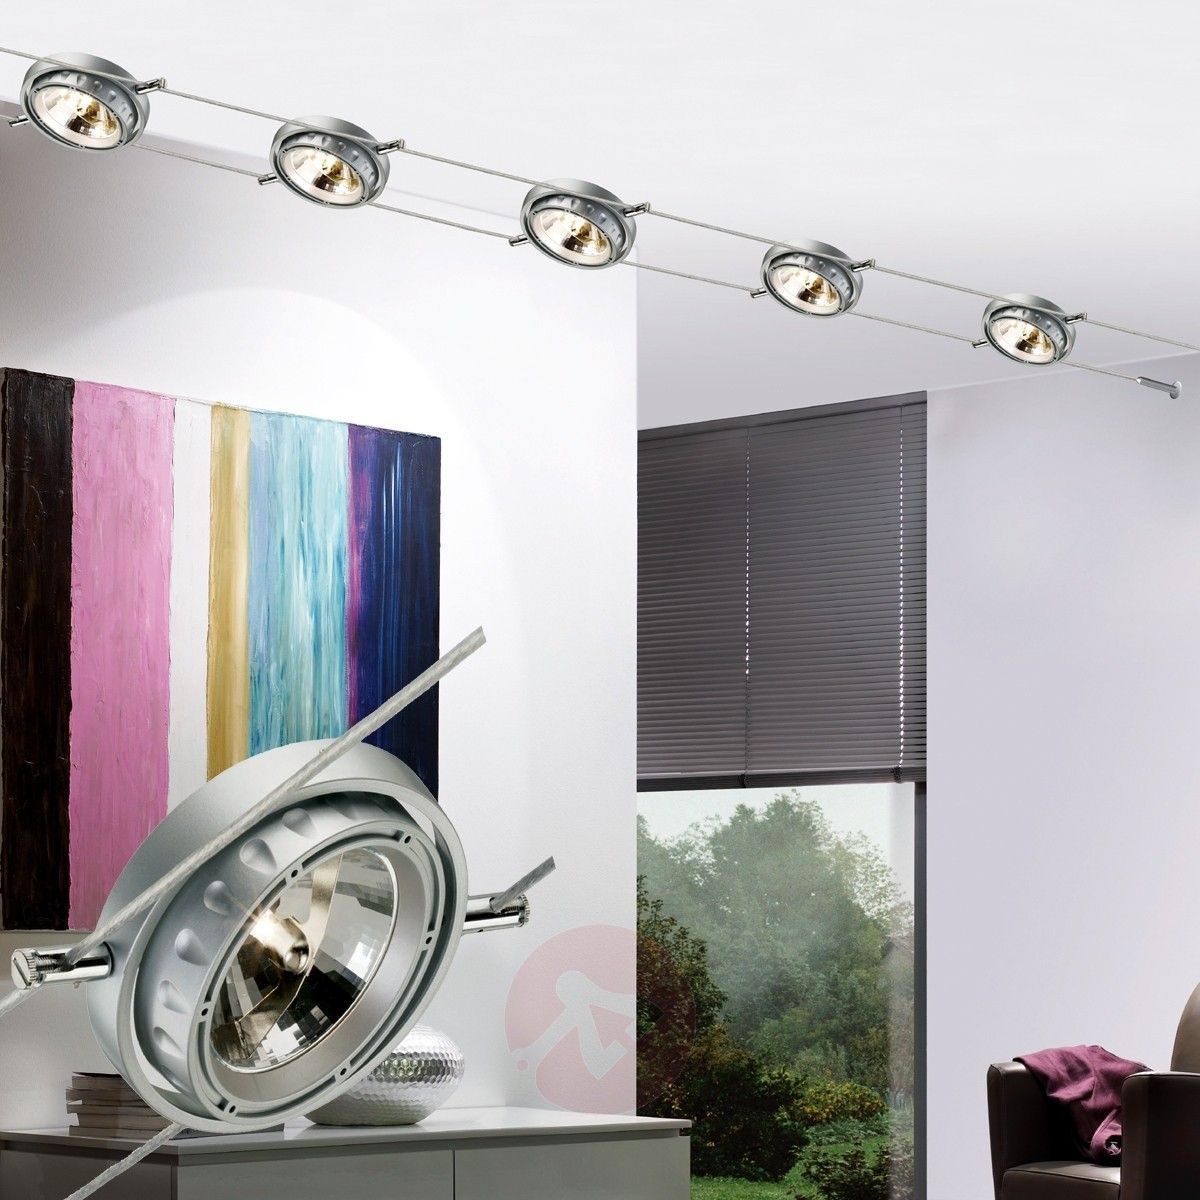 Powerline Low Voltage Cable System 6 Set Round Mirror Bathroom Light Architecture Home